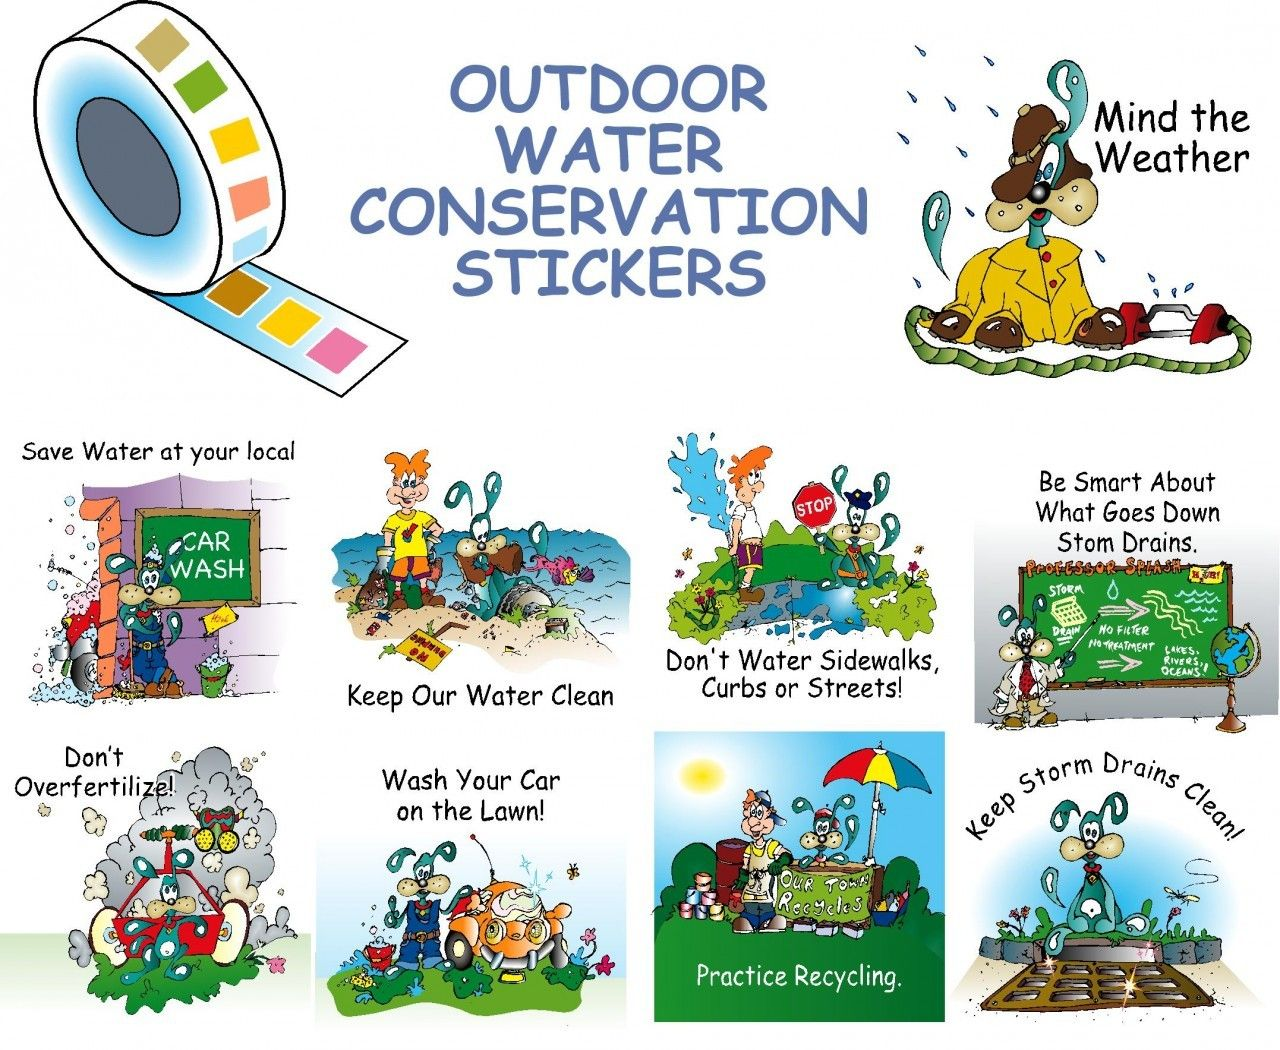 Energy and water conservation tips